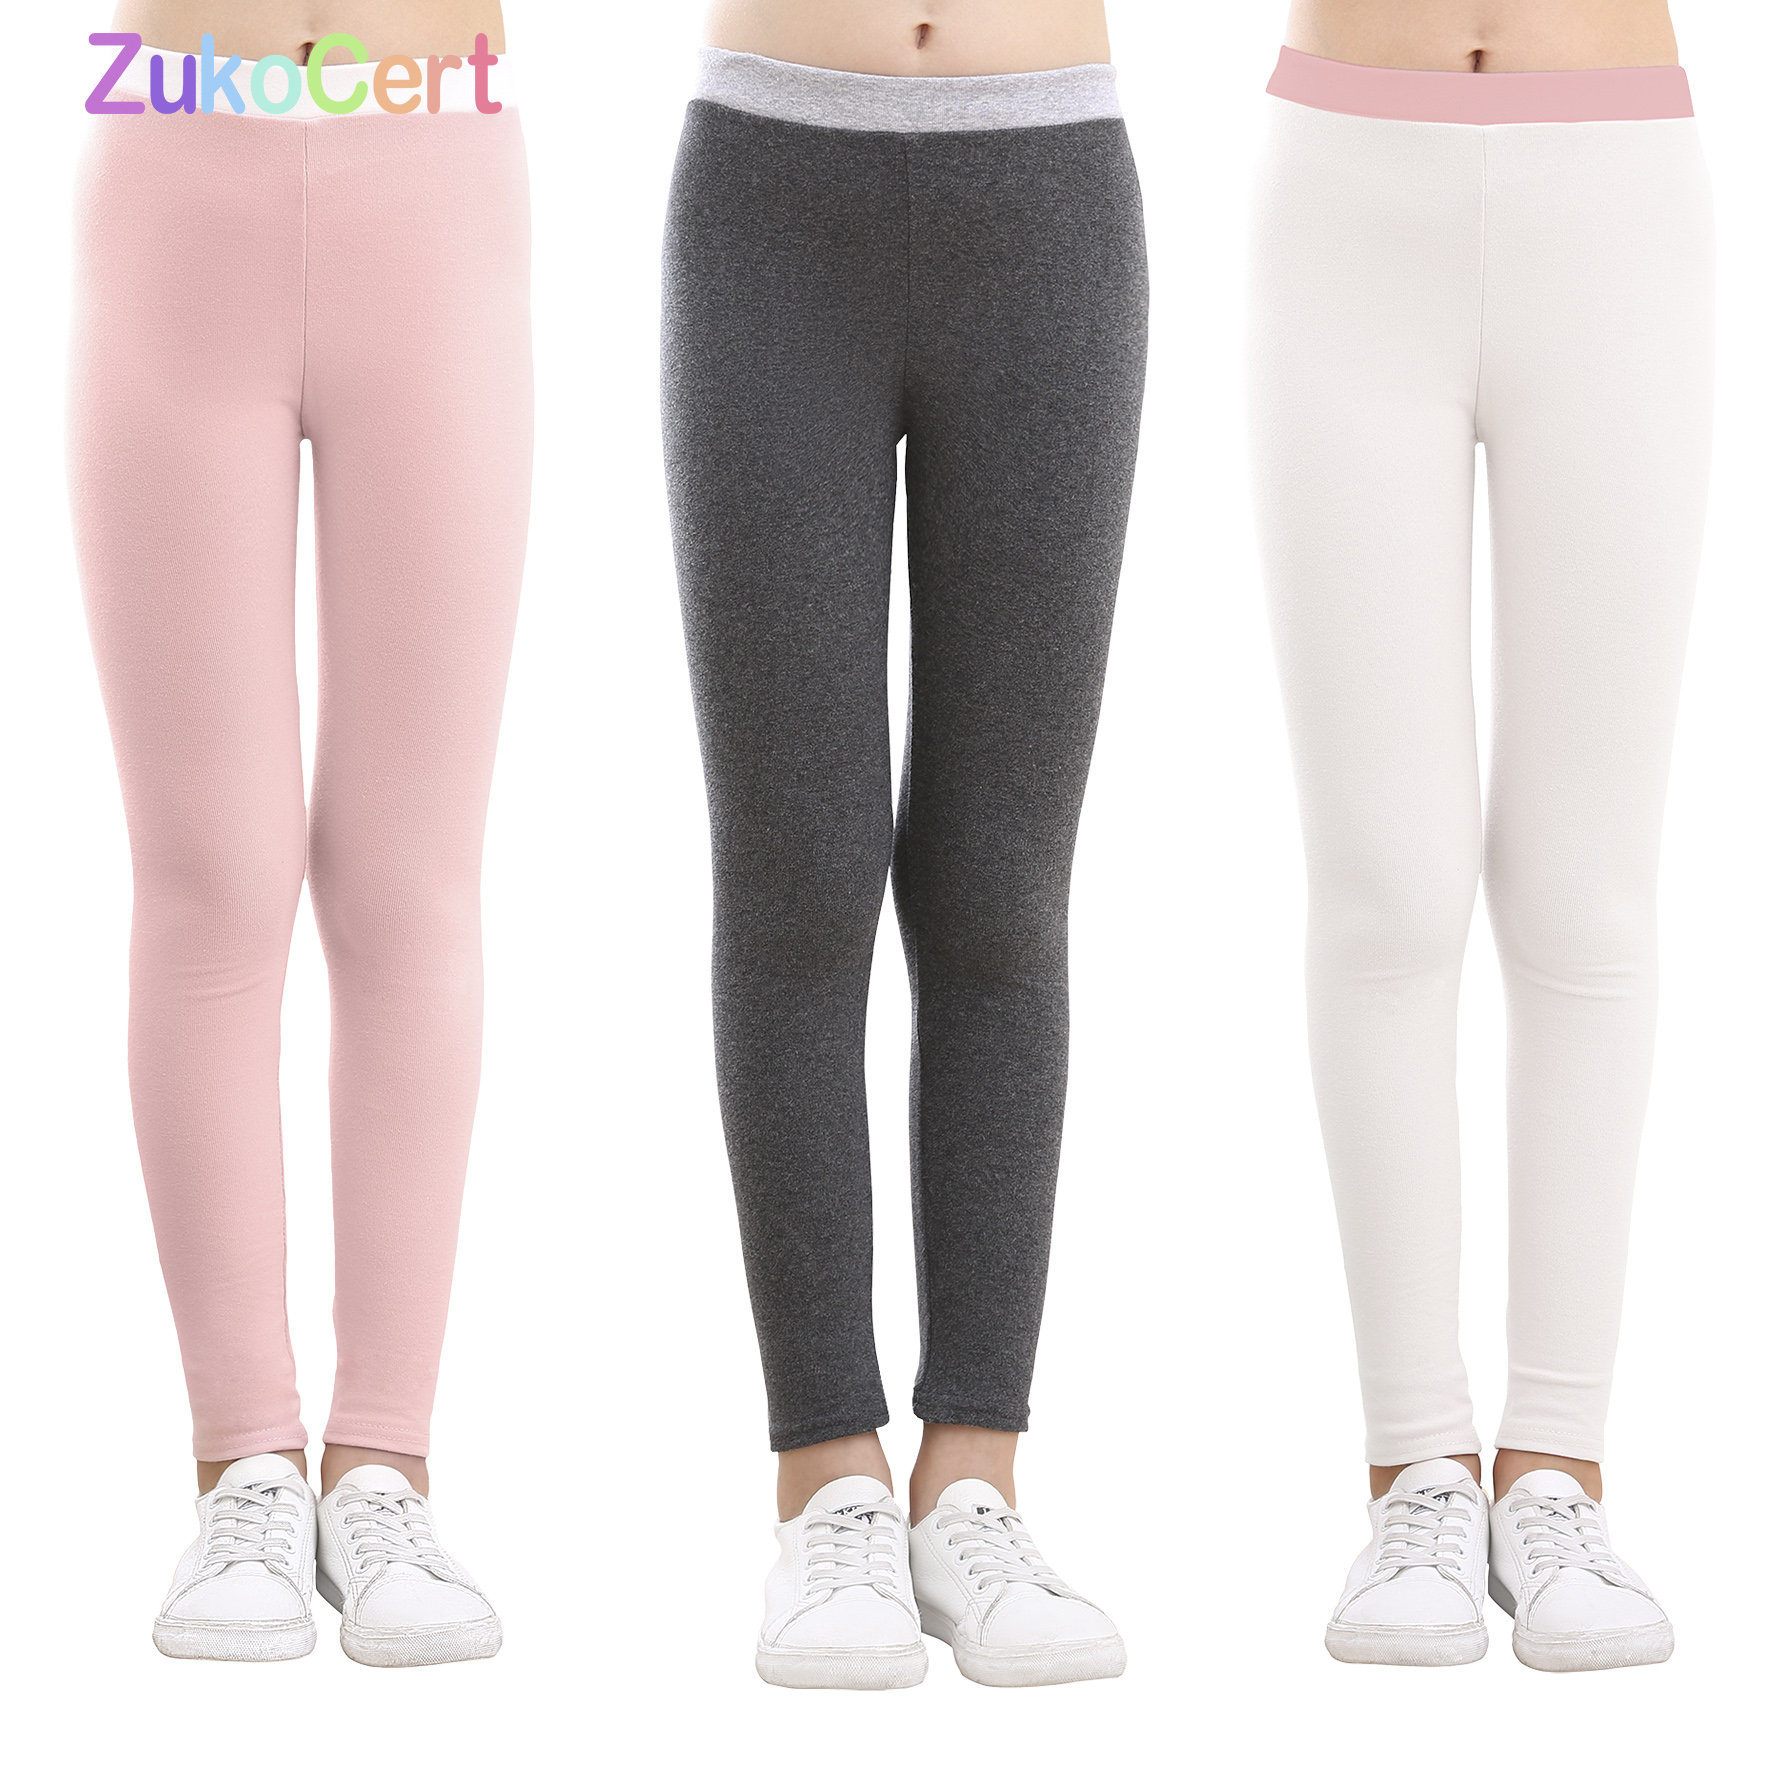 Cotton family matching clothes Women Kids Girls mother and daughter Leggings Casual Warm matching family clothing Solid Colors